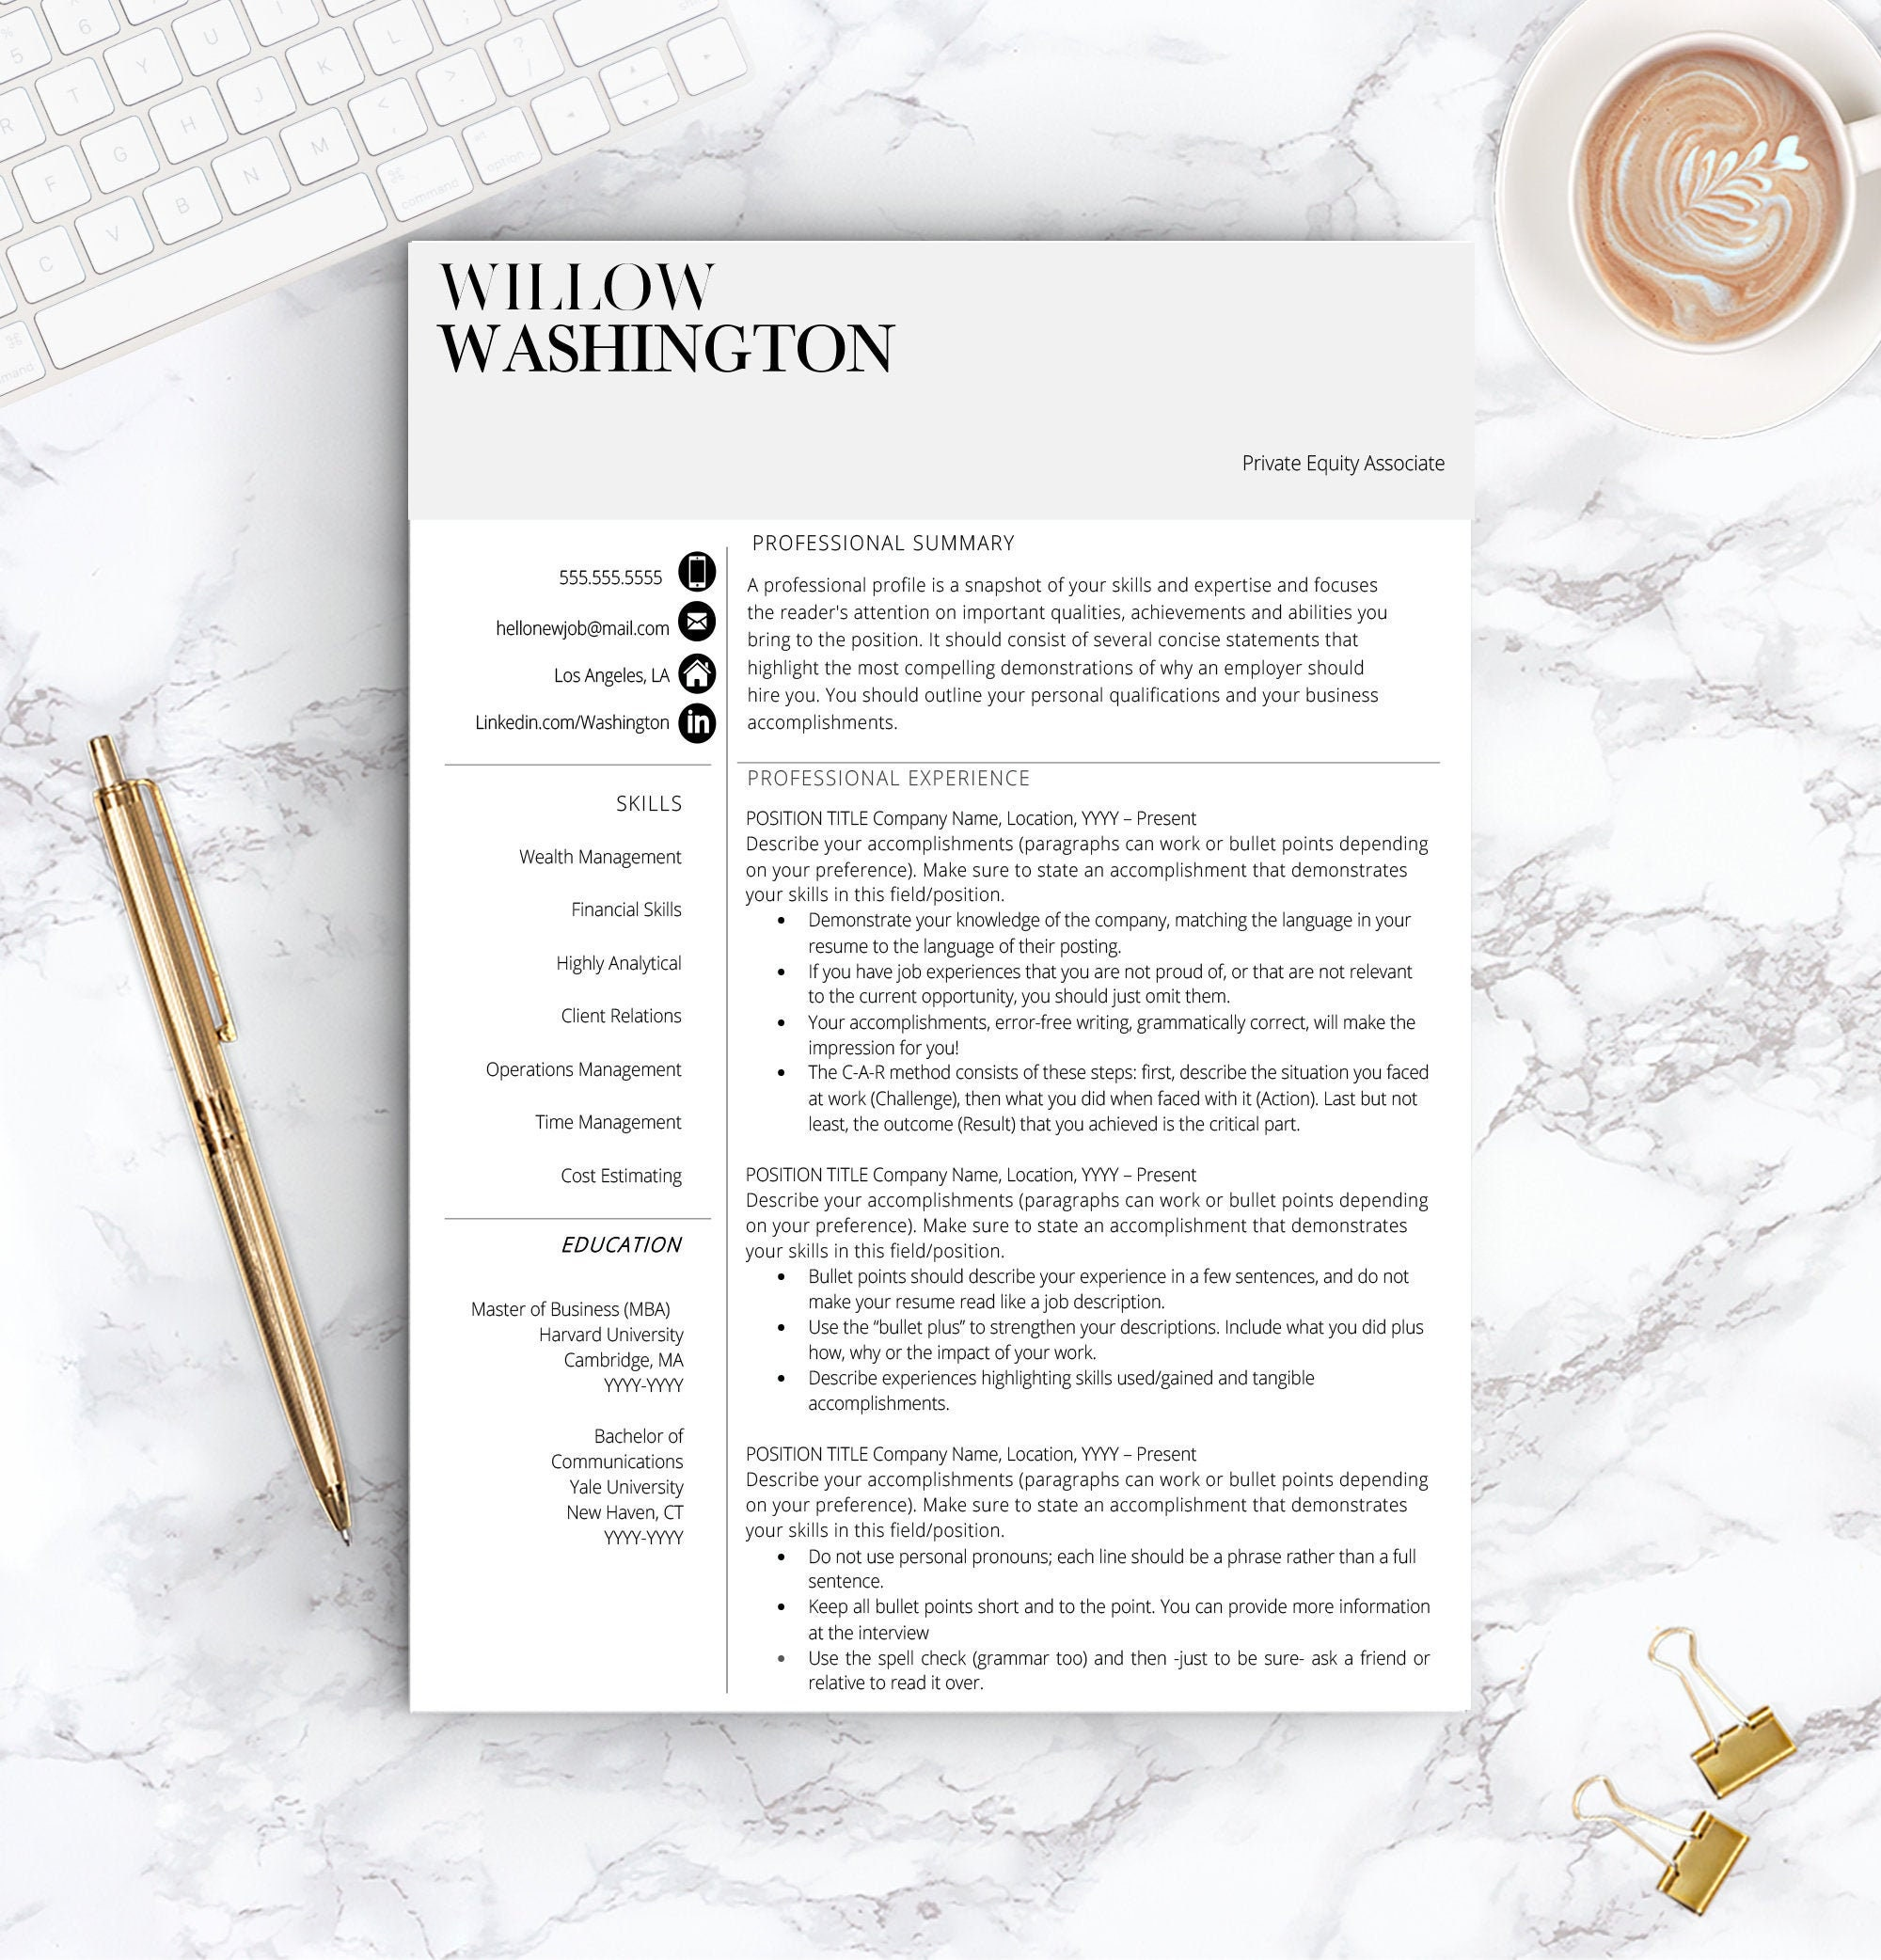 Resume Template for Word | 1 & 2 PageProfessional Resume Template, Cover  Letter | Instant Download |Modern Resume Template |Professional CV